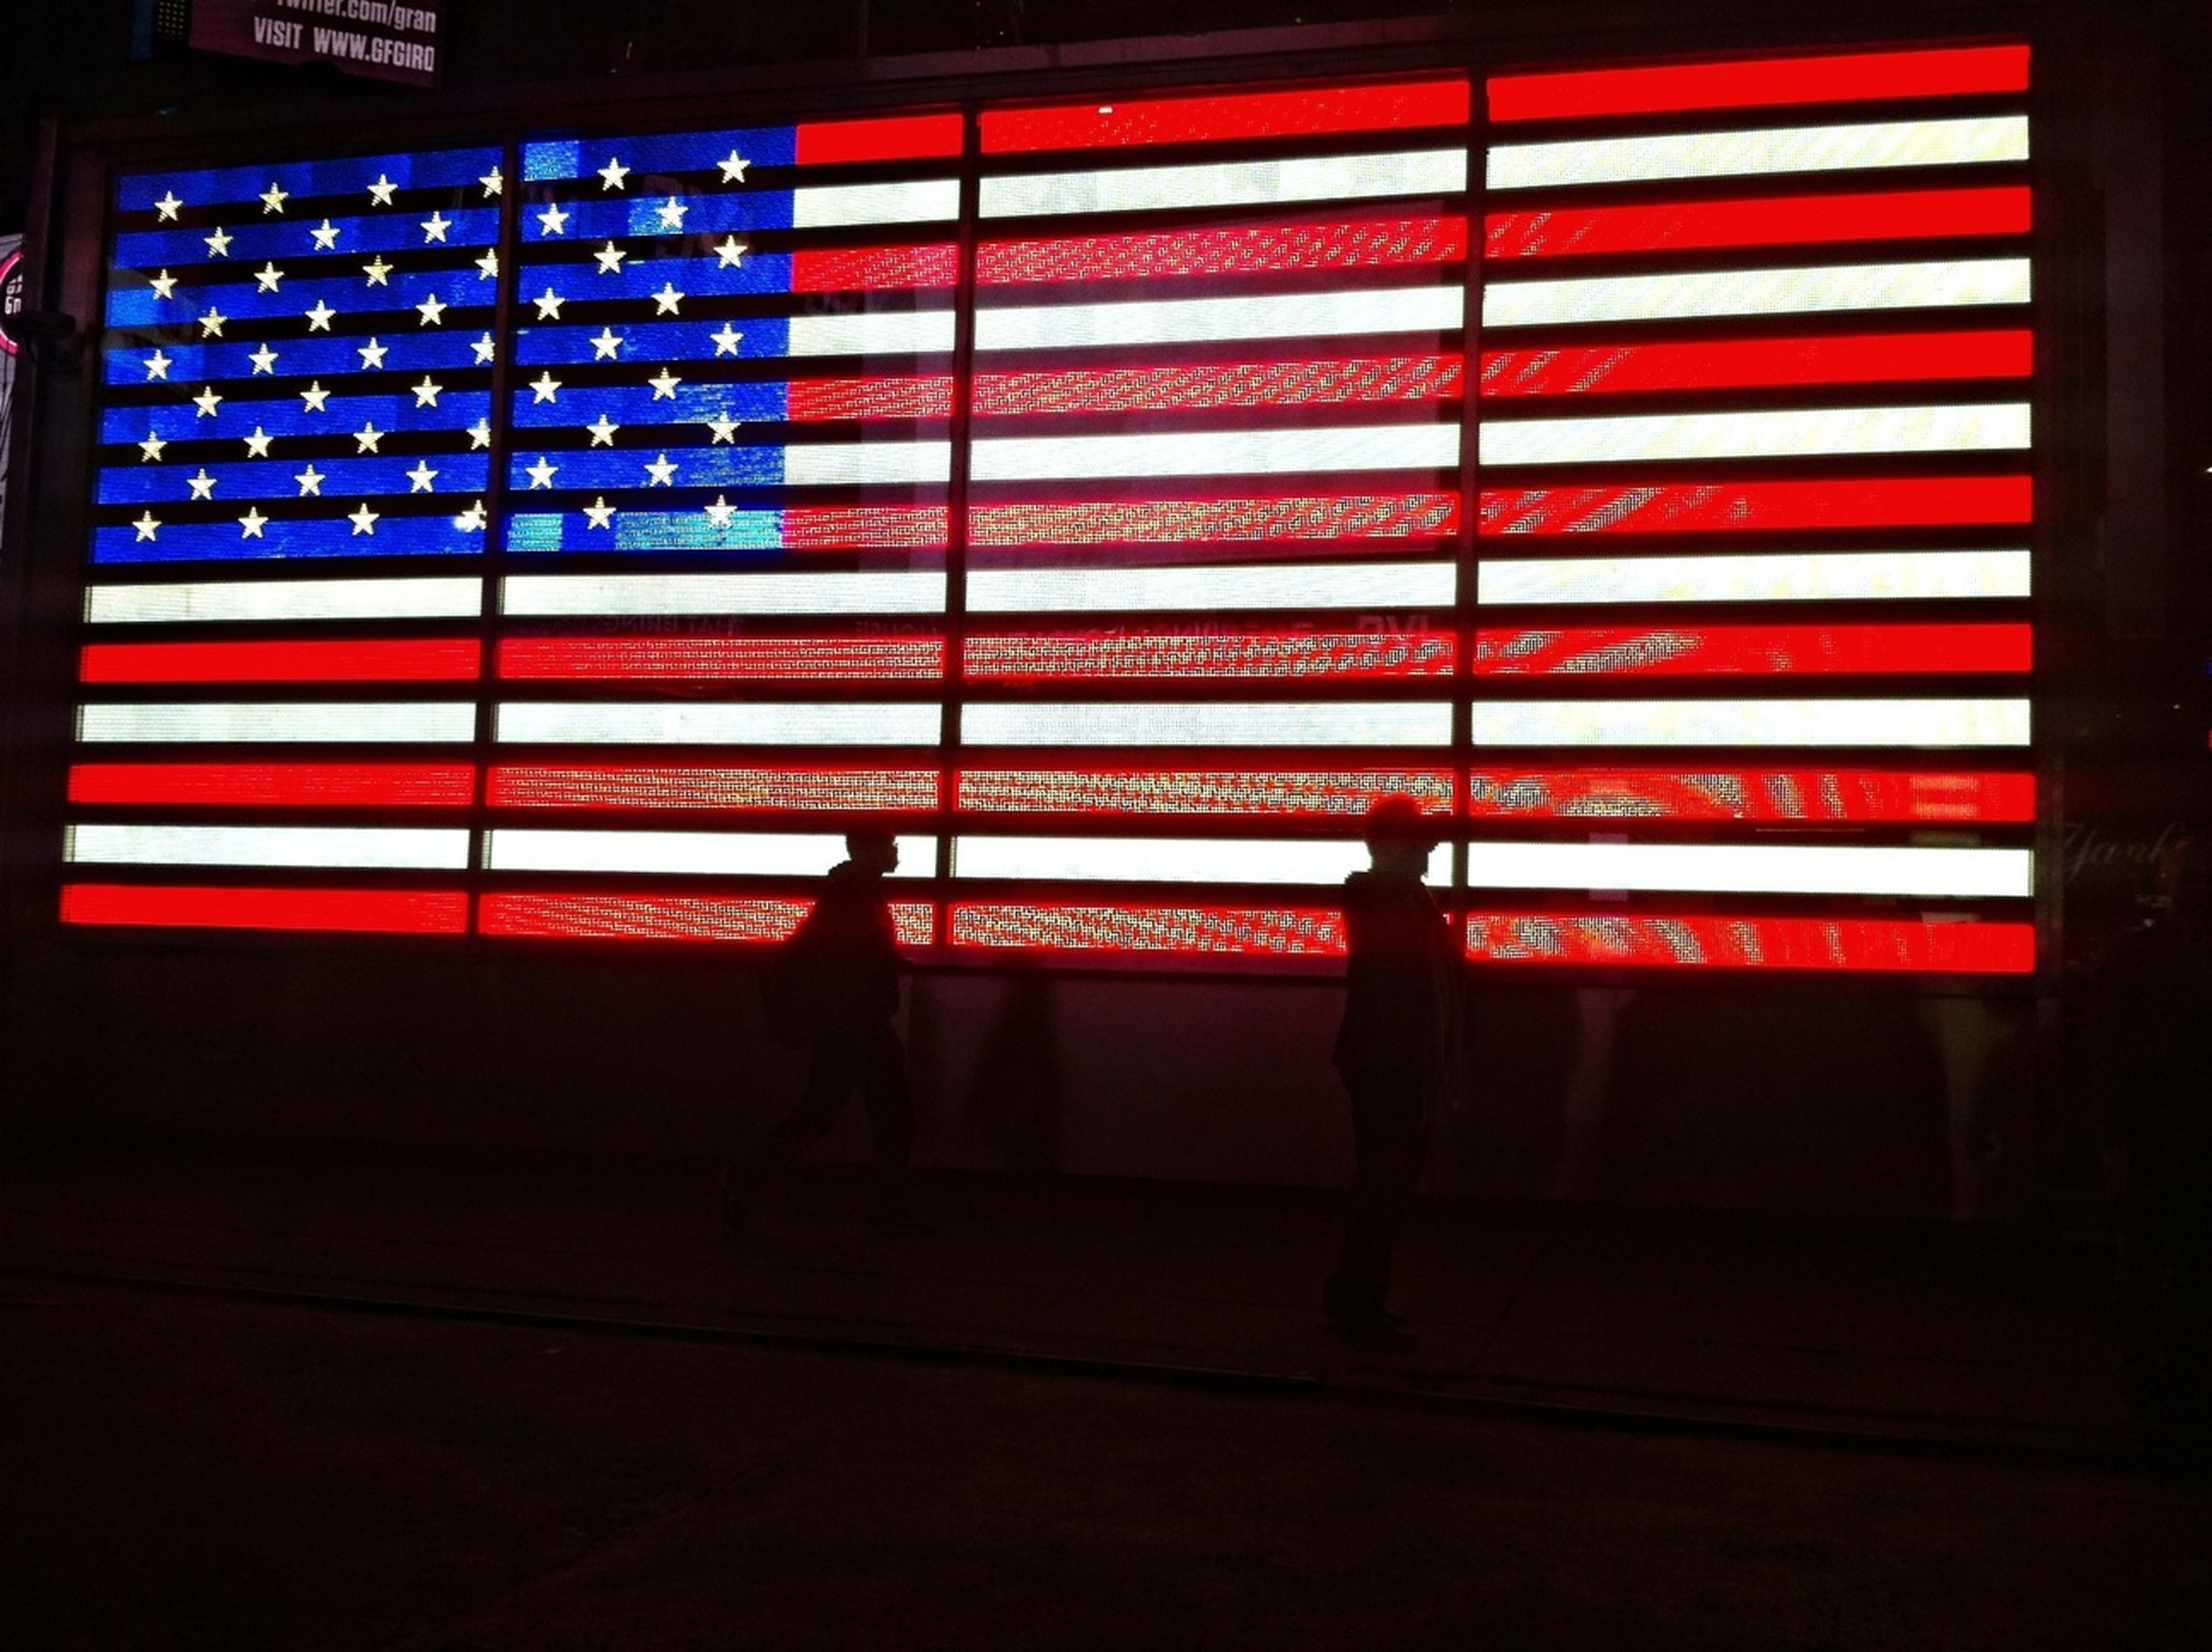 architecture, built structure, building exterior, red, american flag, flag, city, western script, patriotism, communication, text, striped, national flag, identity, city life, guidance, road sign, sign, information sign, illuminated